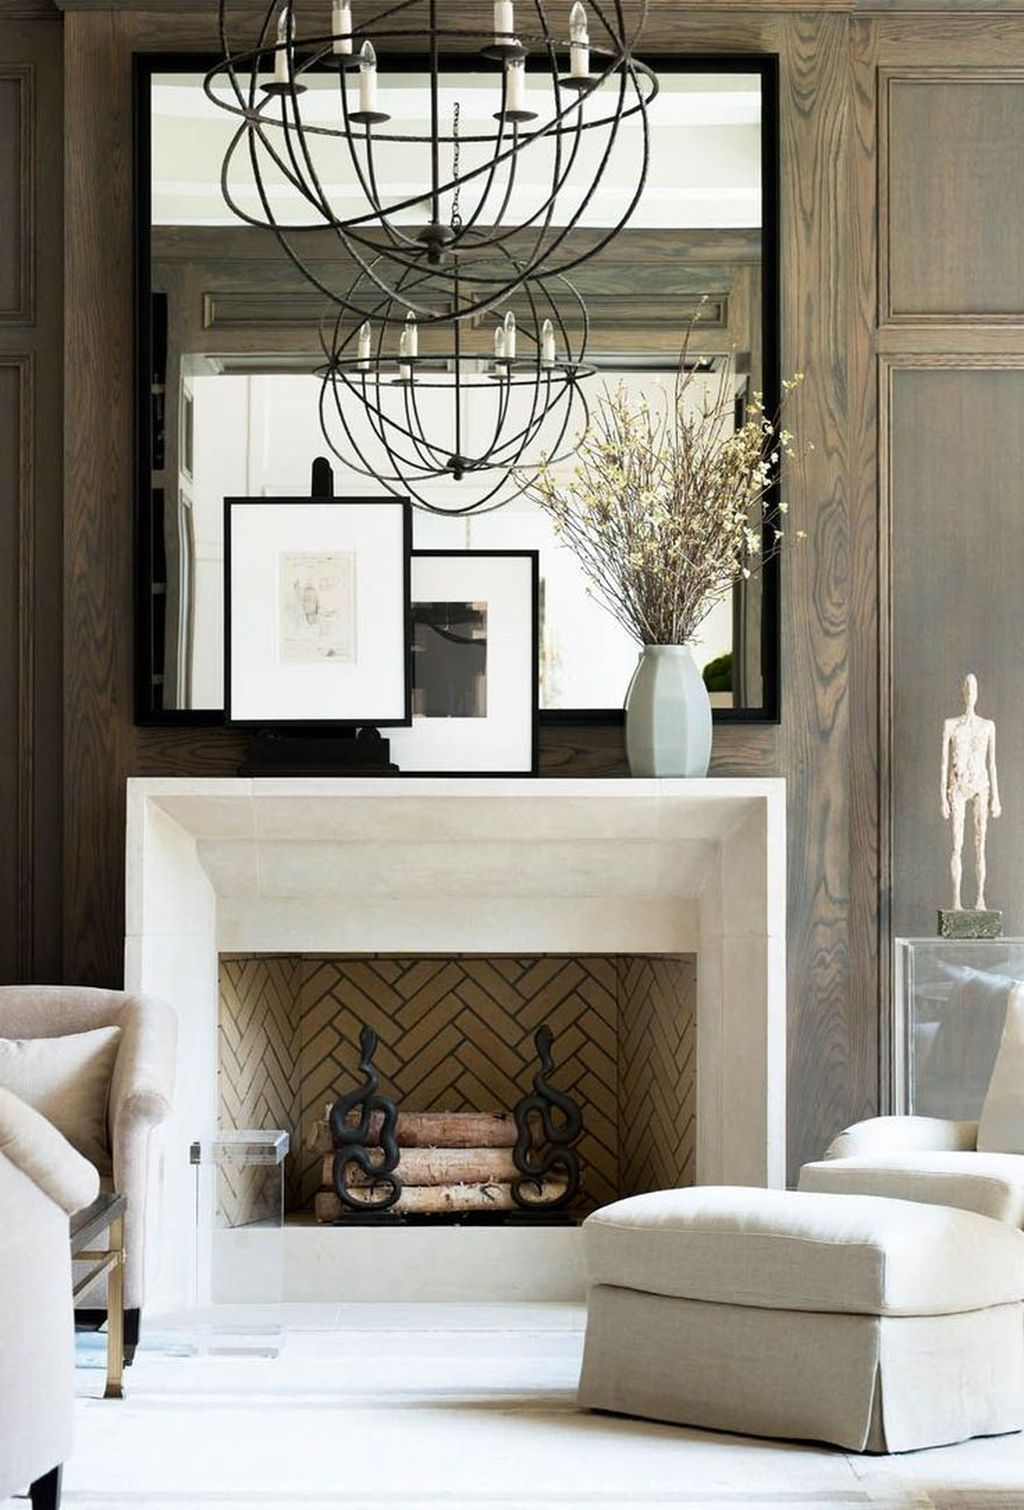 Stunning Traditional Fireplace Decor Ideas You Must Try This Winter In 2020 Modern Fireplace Decor Classic Interior Design Transitional Living Room Design